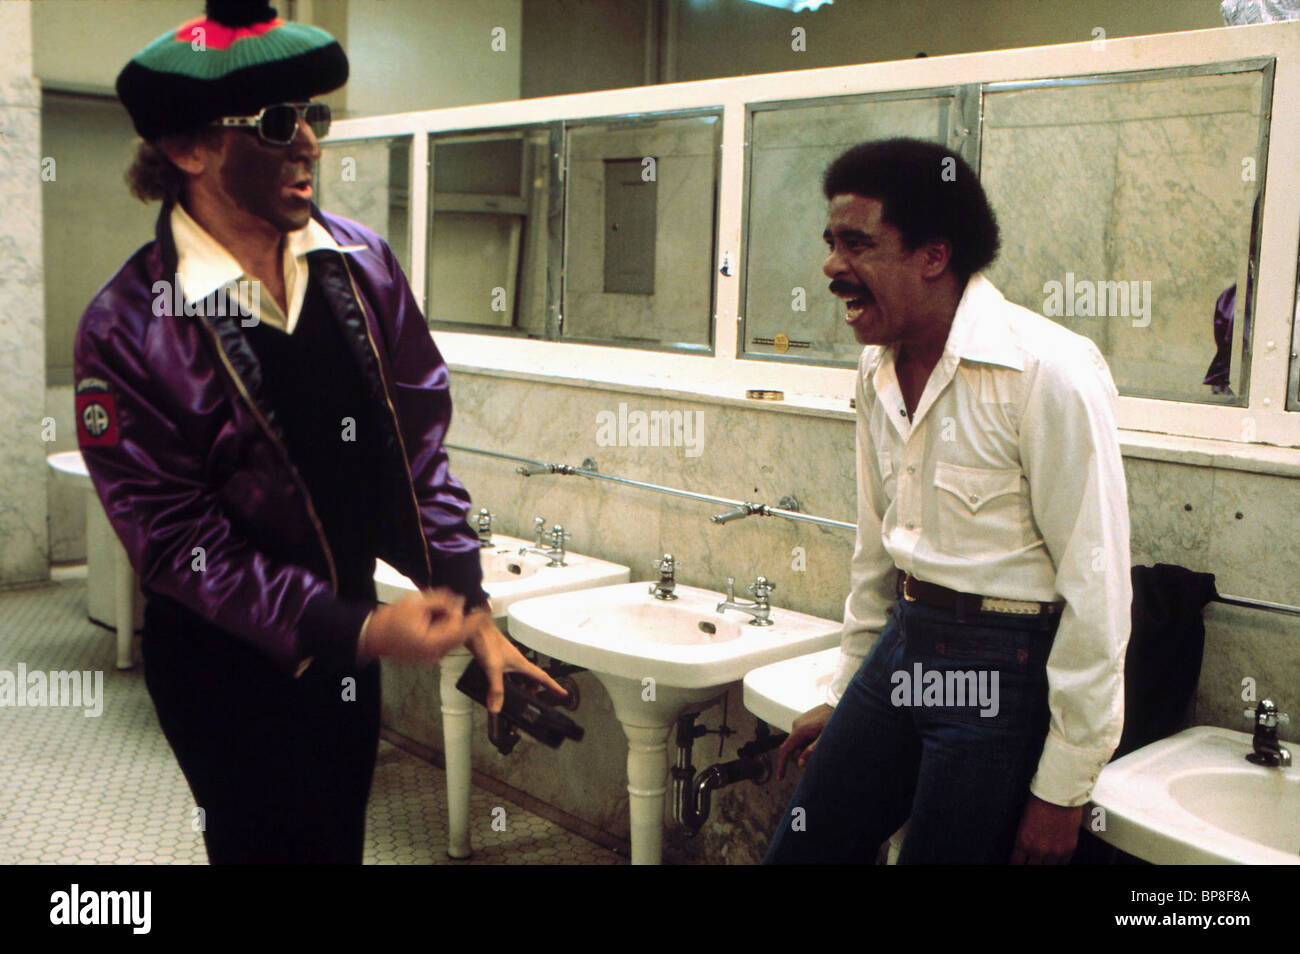 gene-wilder-richard-pryor-silver-streak-